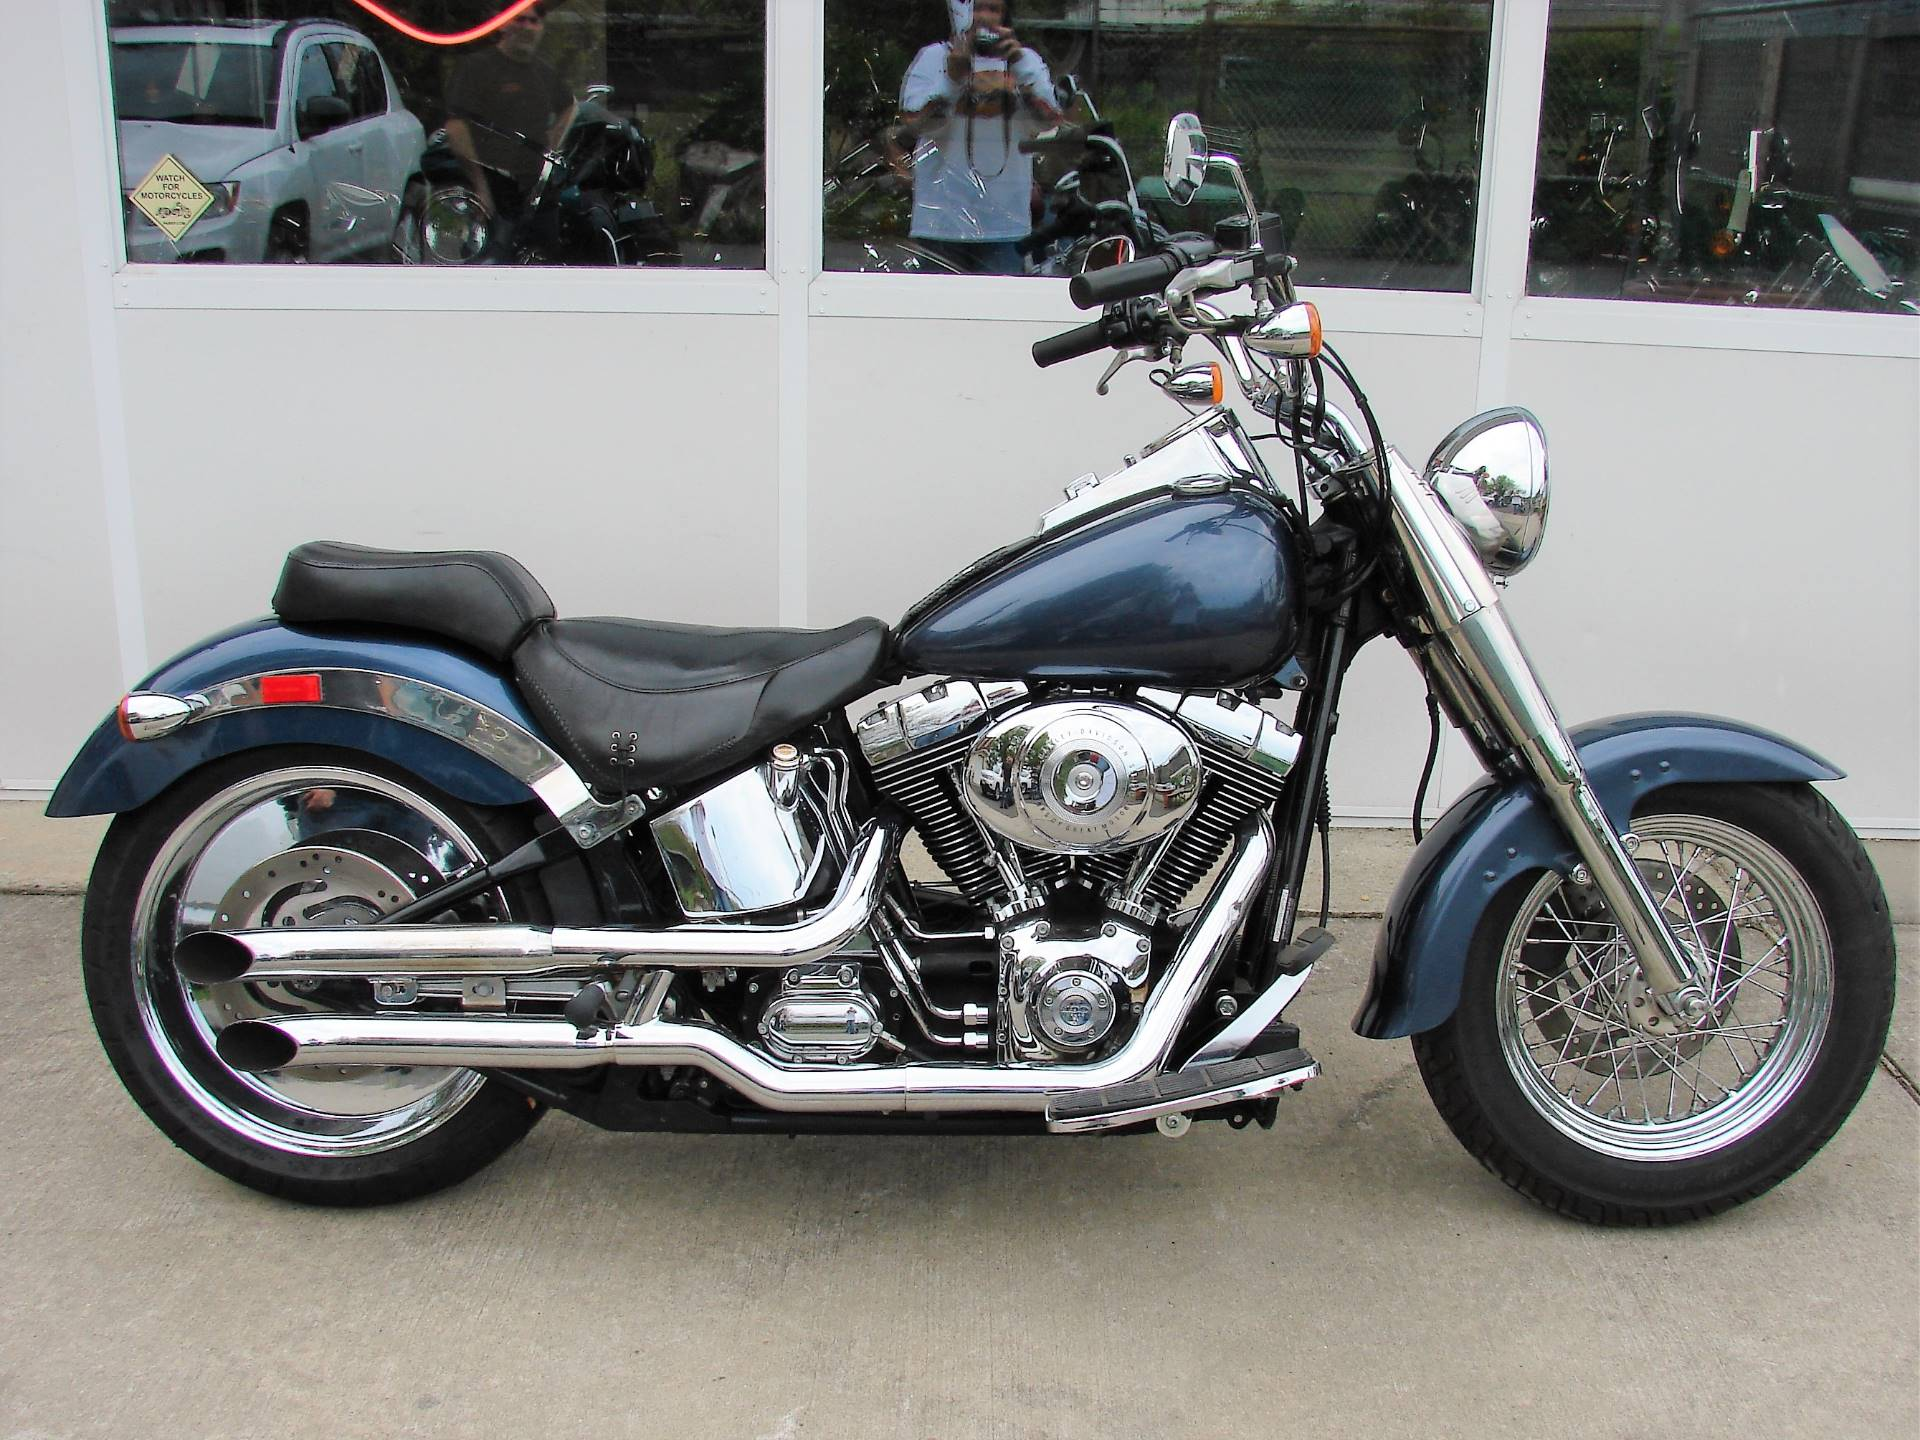 2003 Harley-Davidson Heritage Softail / Fatboy in Williamstown, New Jersey - Photo 1